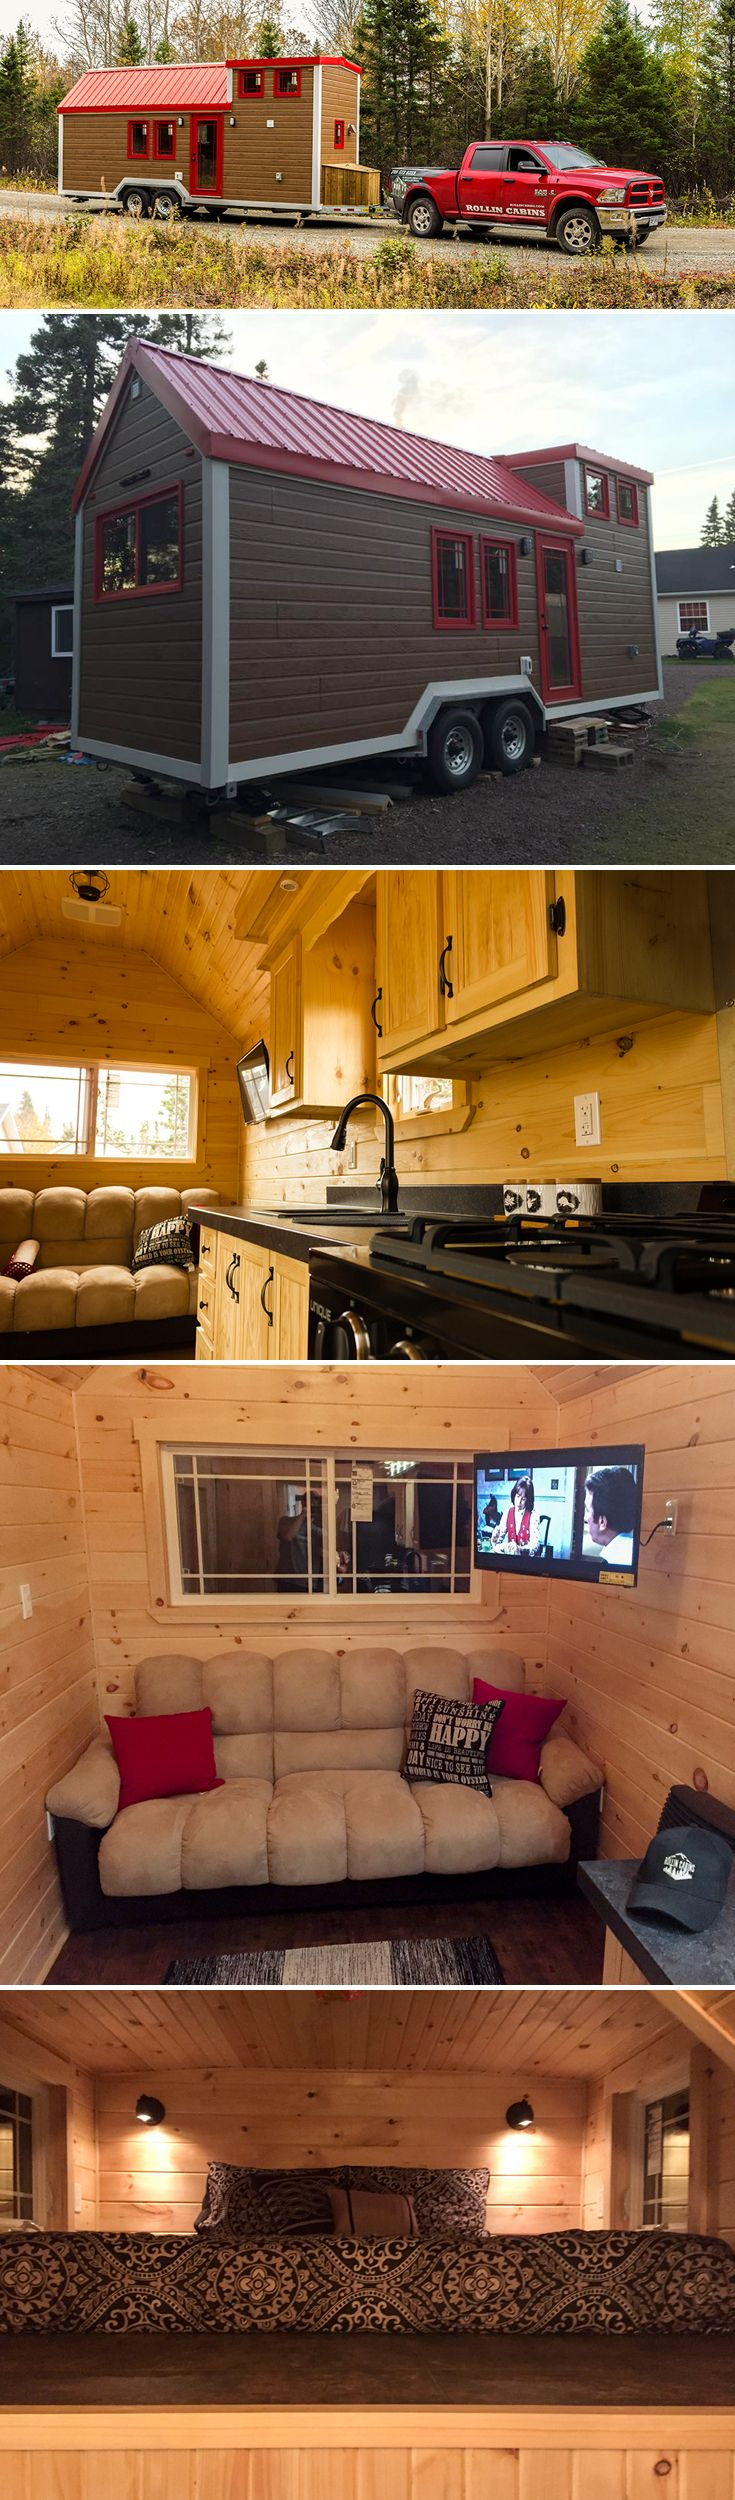 Best 25 Tiny house on trailer ideas on Pinterest Tiny house on